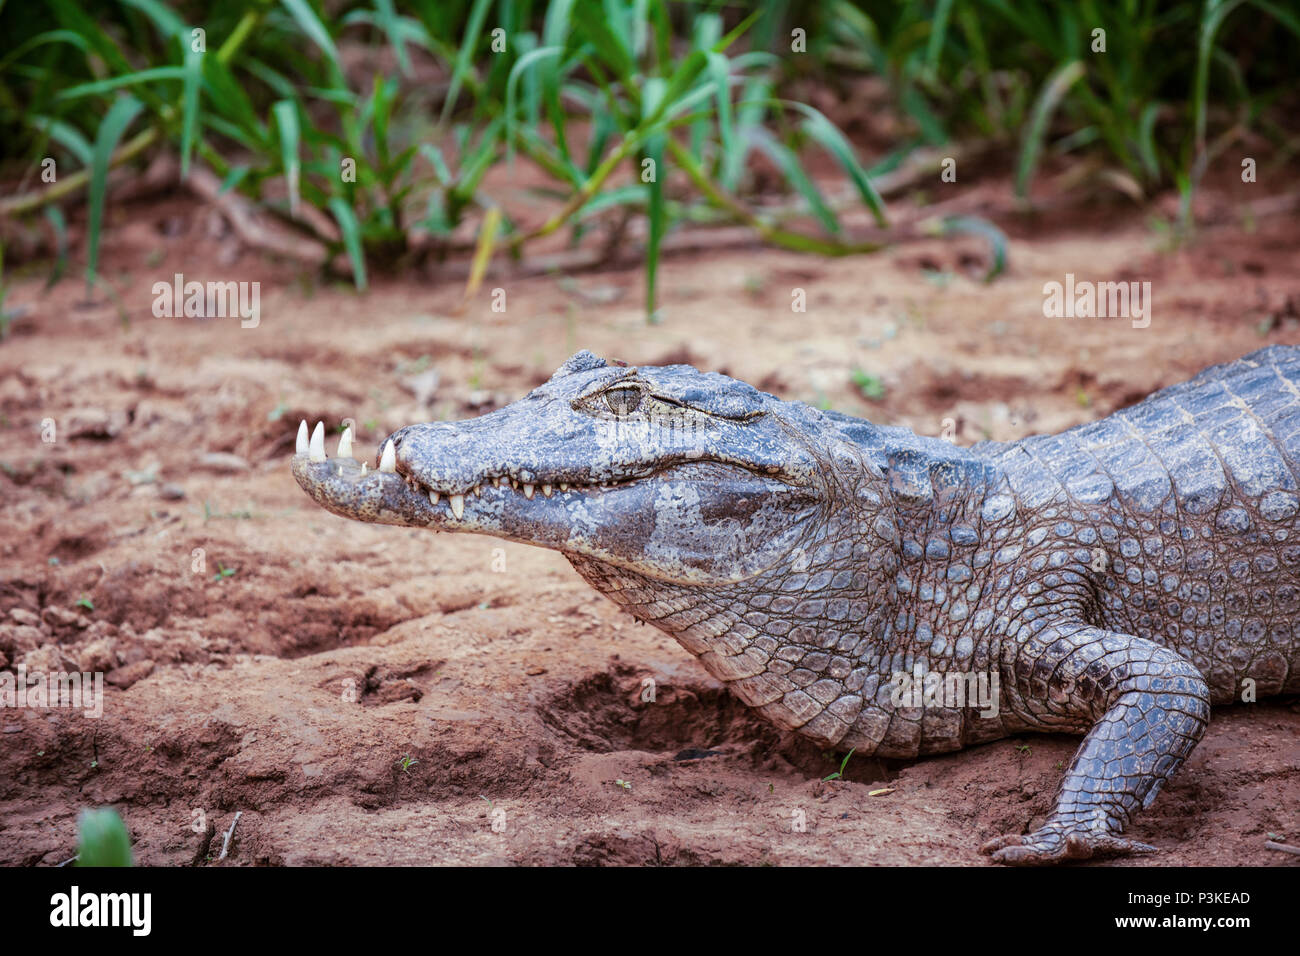 Caiman with deformed short upper jaw, at the edge of the river Sao Lourenco, Pantanal, Brazil - Stock Image